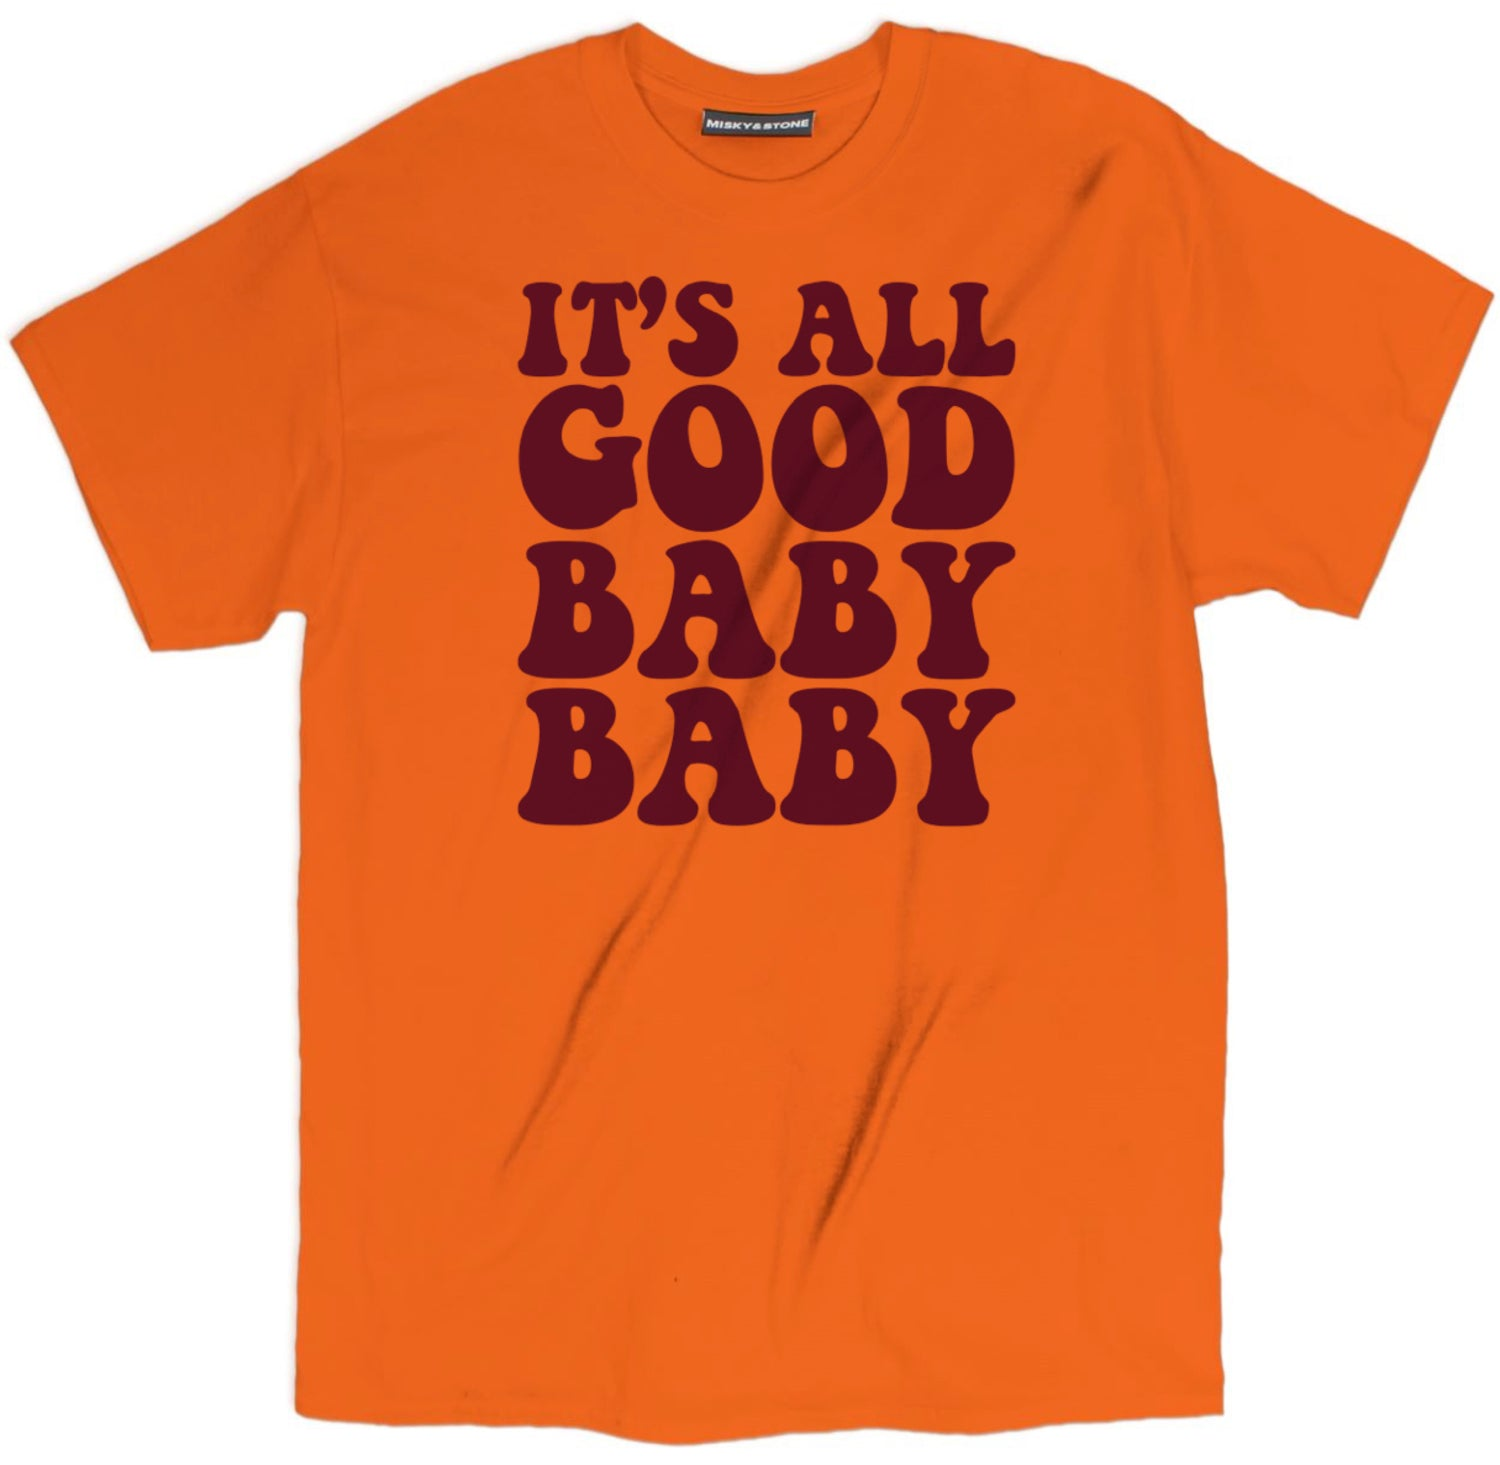 It's All Good Baby Baby Shirt